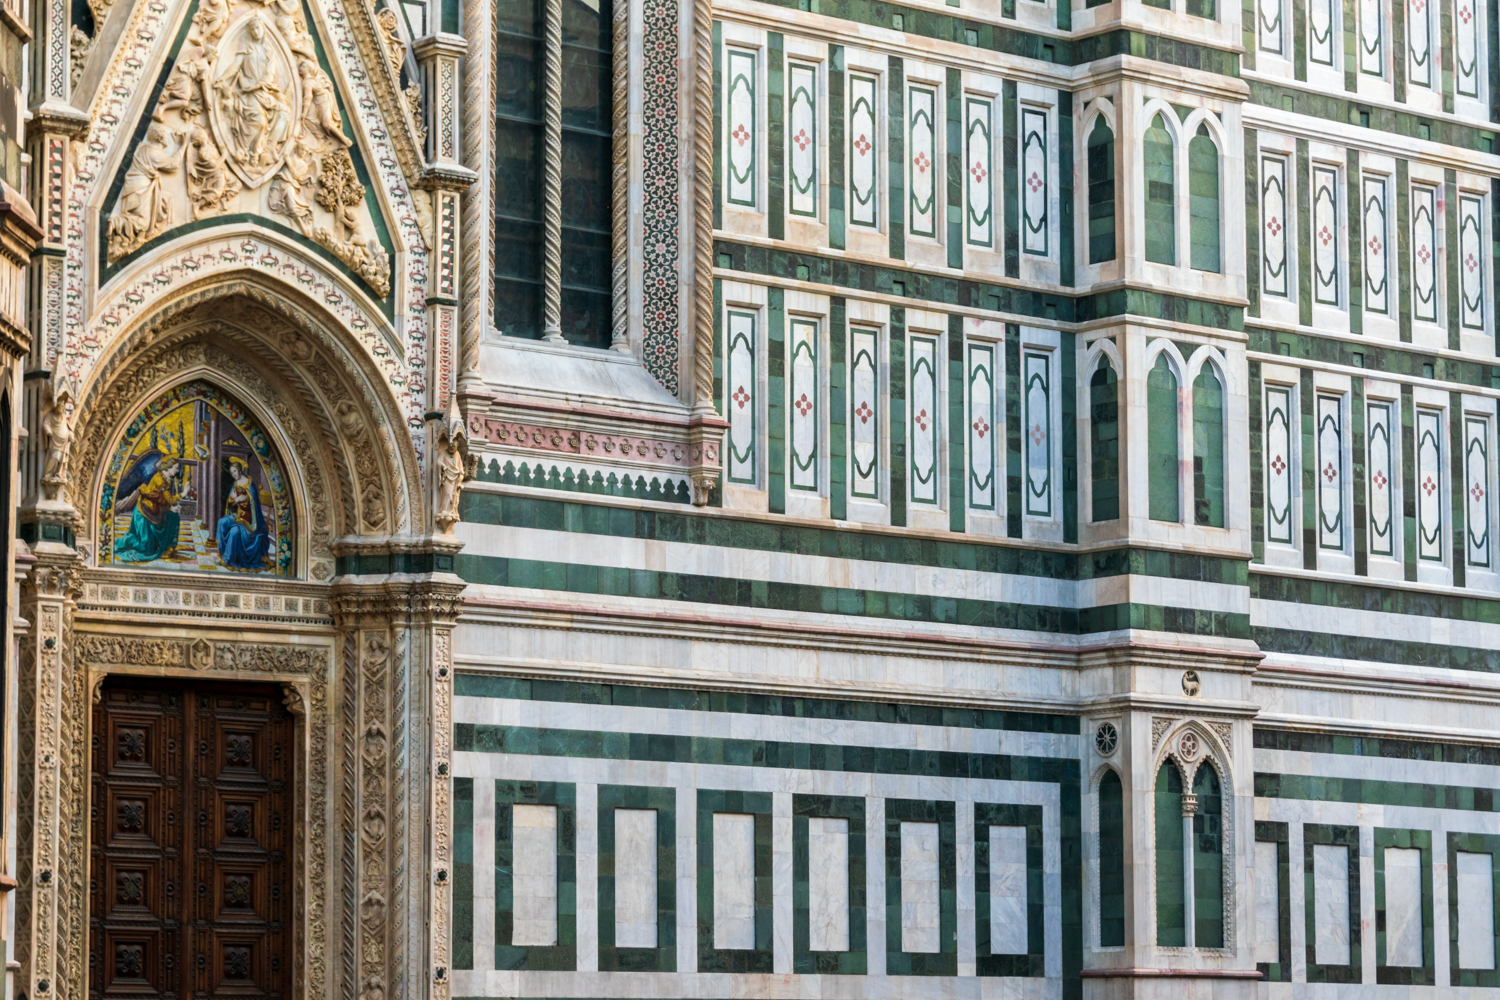 The lateral walls of Cathedral of Santa Maria del Fiore in Florence, Tuscany, Italy